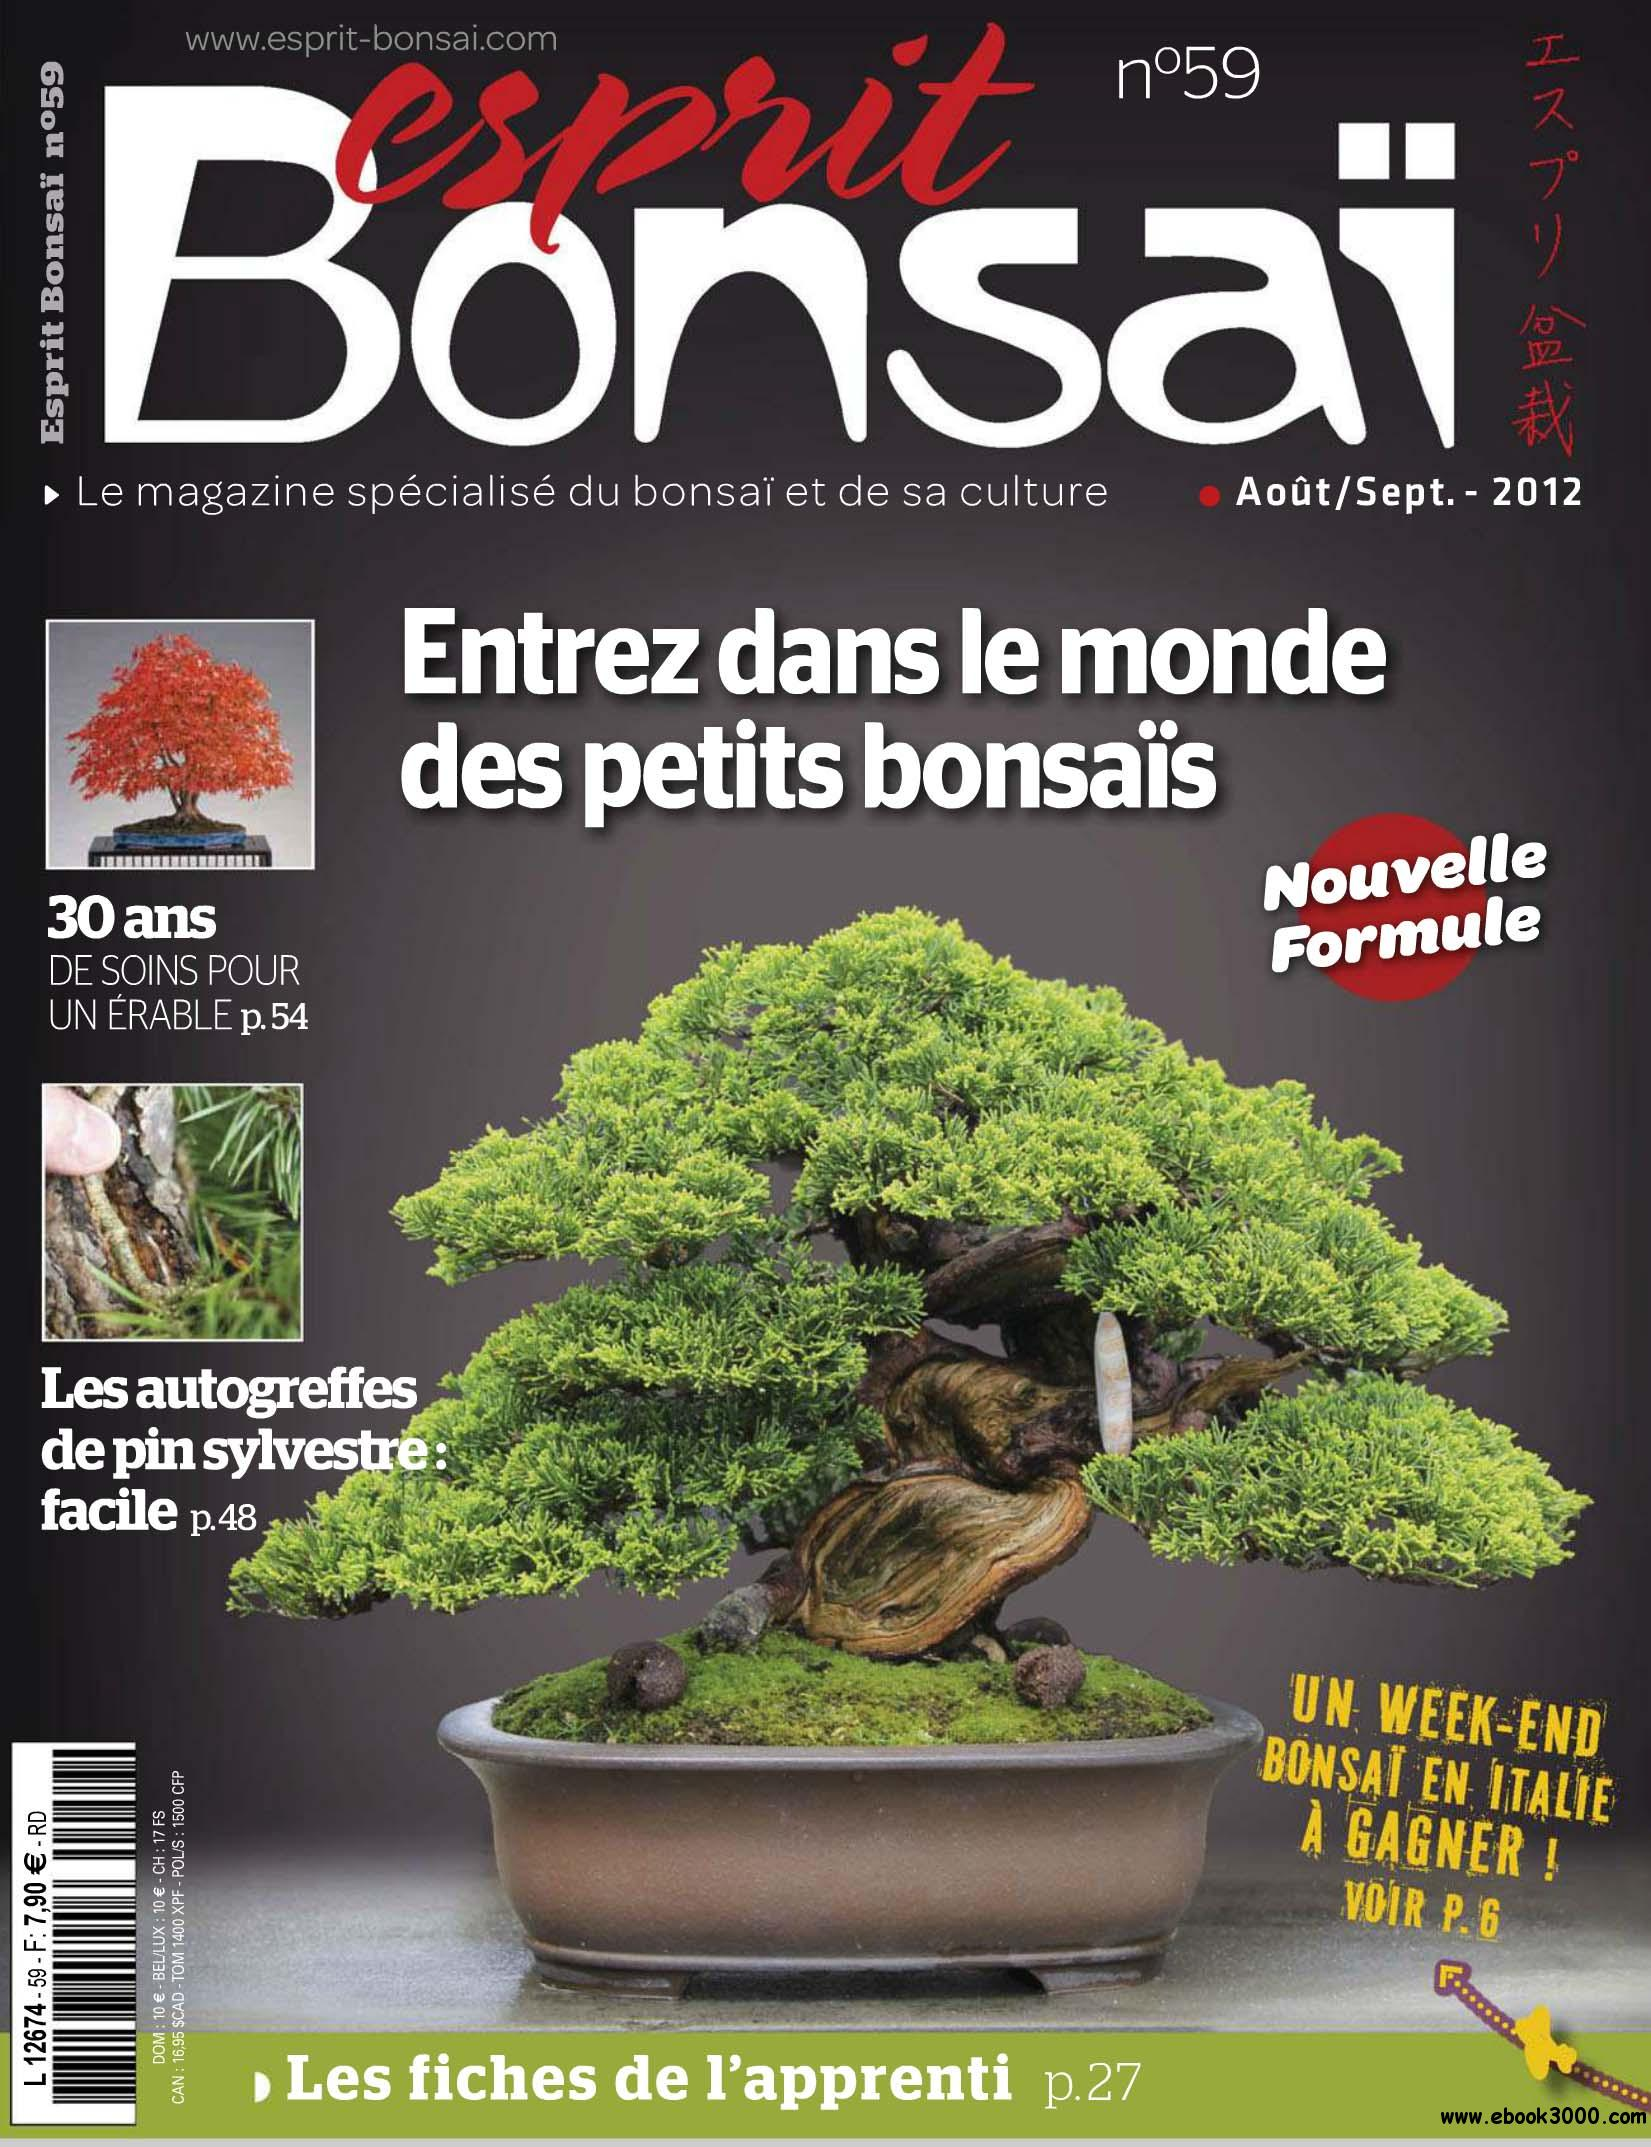 Esprit Bonsai N.59 Aout / Septembre 2012 free download